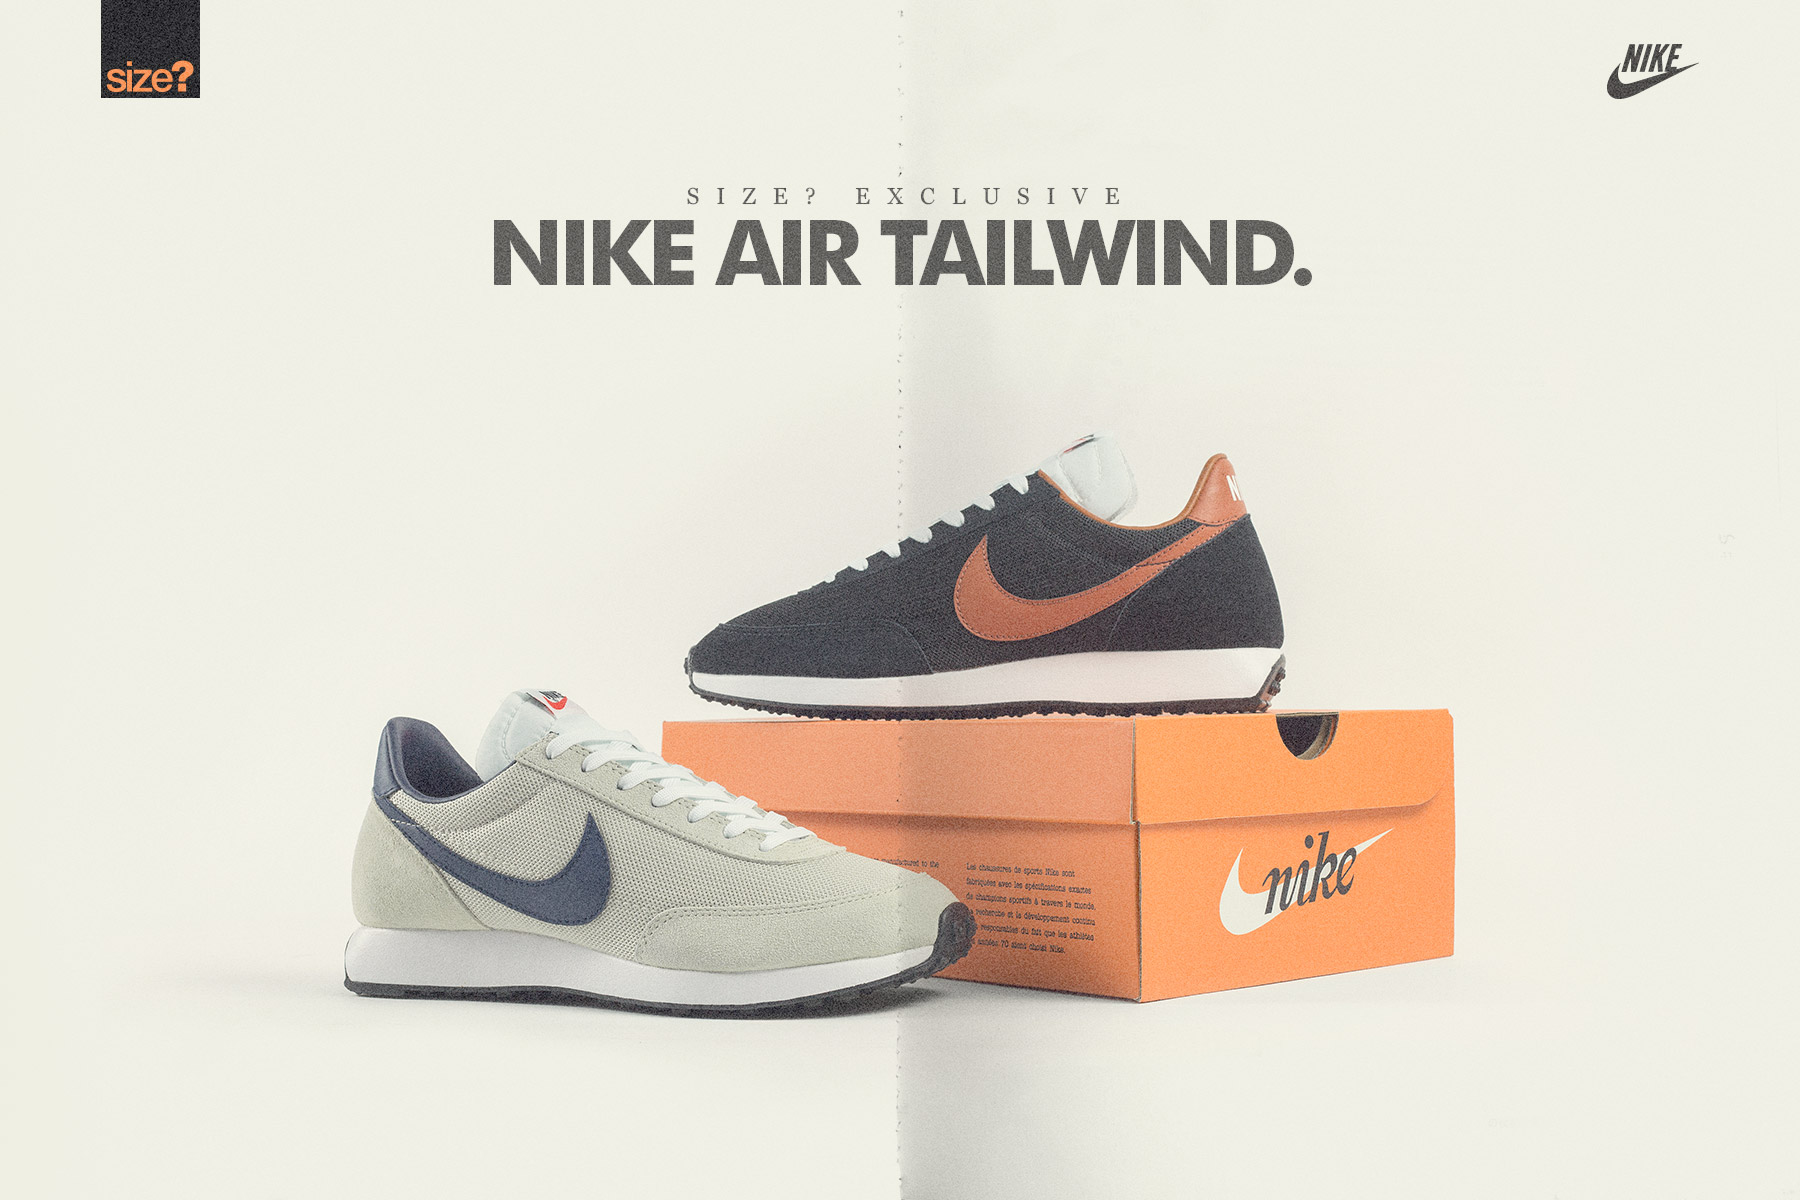 hot sale online 94838 0959f Nike Tailwind - size? Exclusive - size? blog